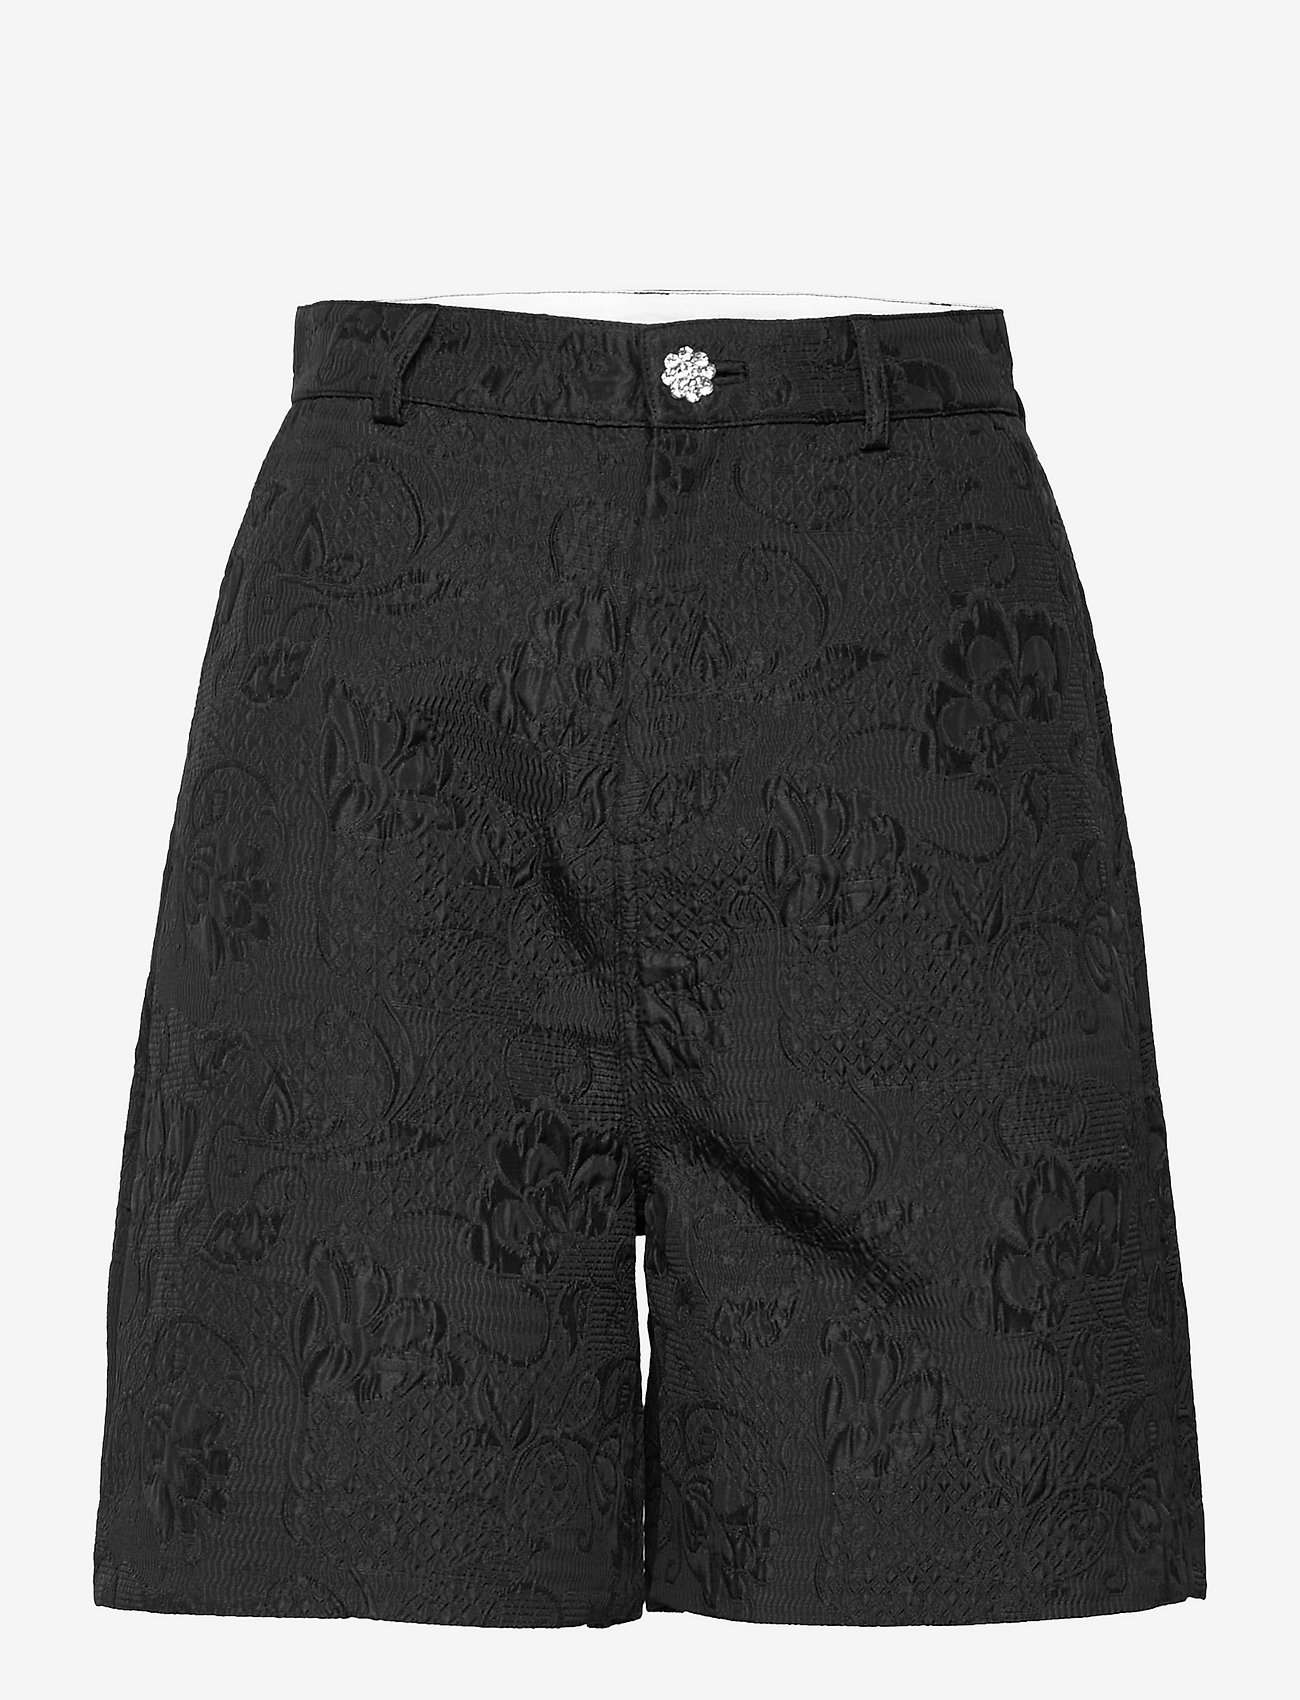 Custommade - Nanette BY NBS - bermudashorts - anthracite black - 1